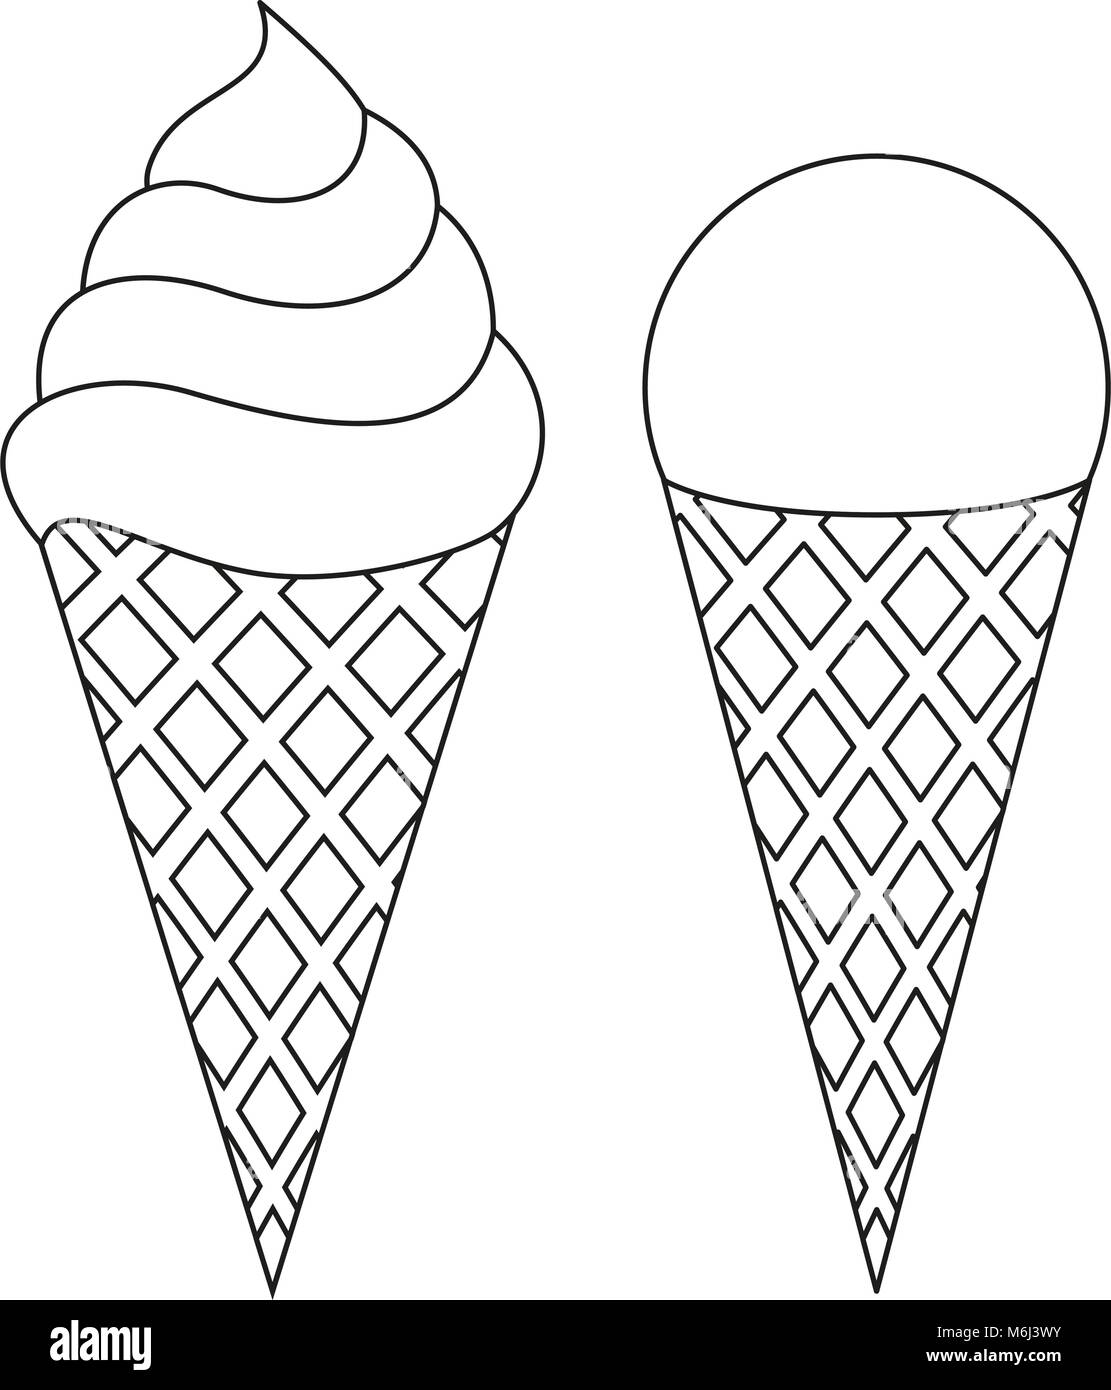 Line Art Ice Cream Cone Black And White Icon Set Coloring Book Page Stock Vector Image Art Alamy